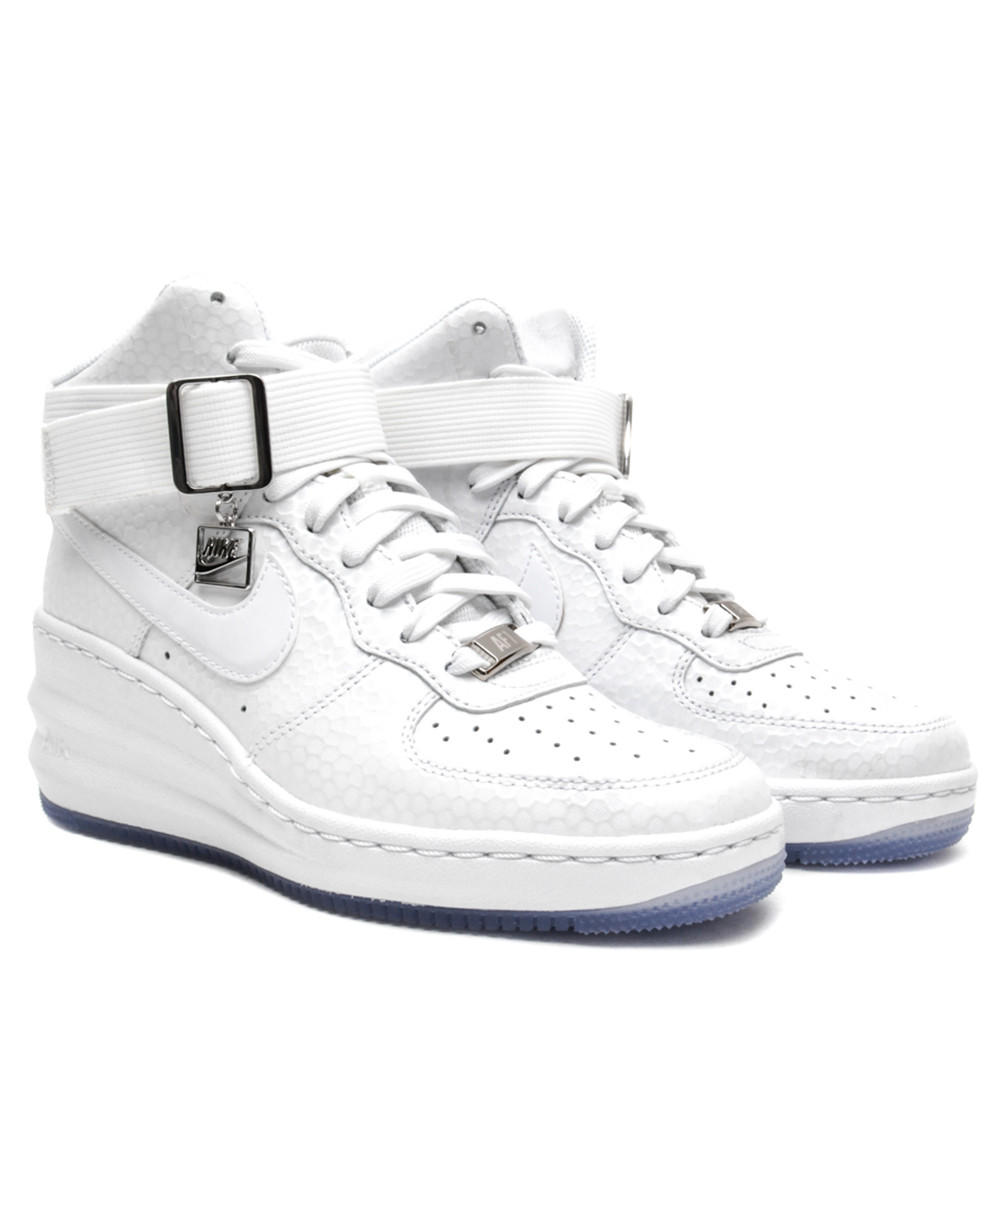 Nike Women s Lunar Force 1 Sky Hi Premium from Attic  8170081e10